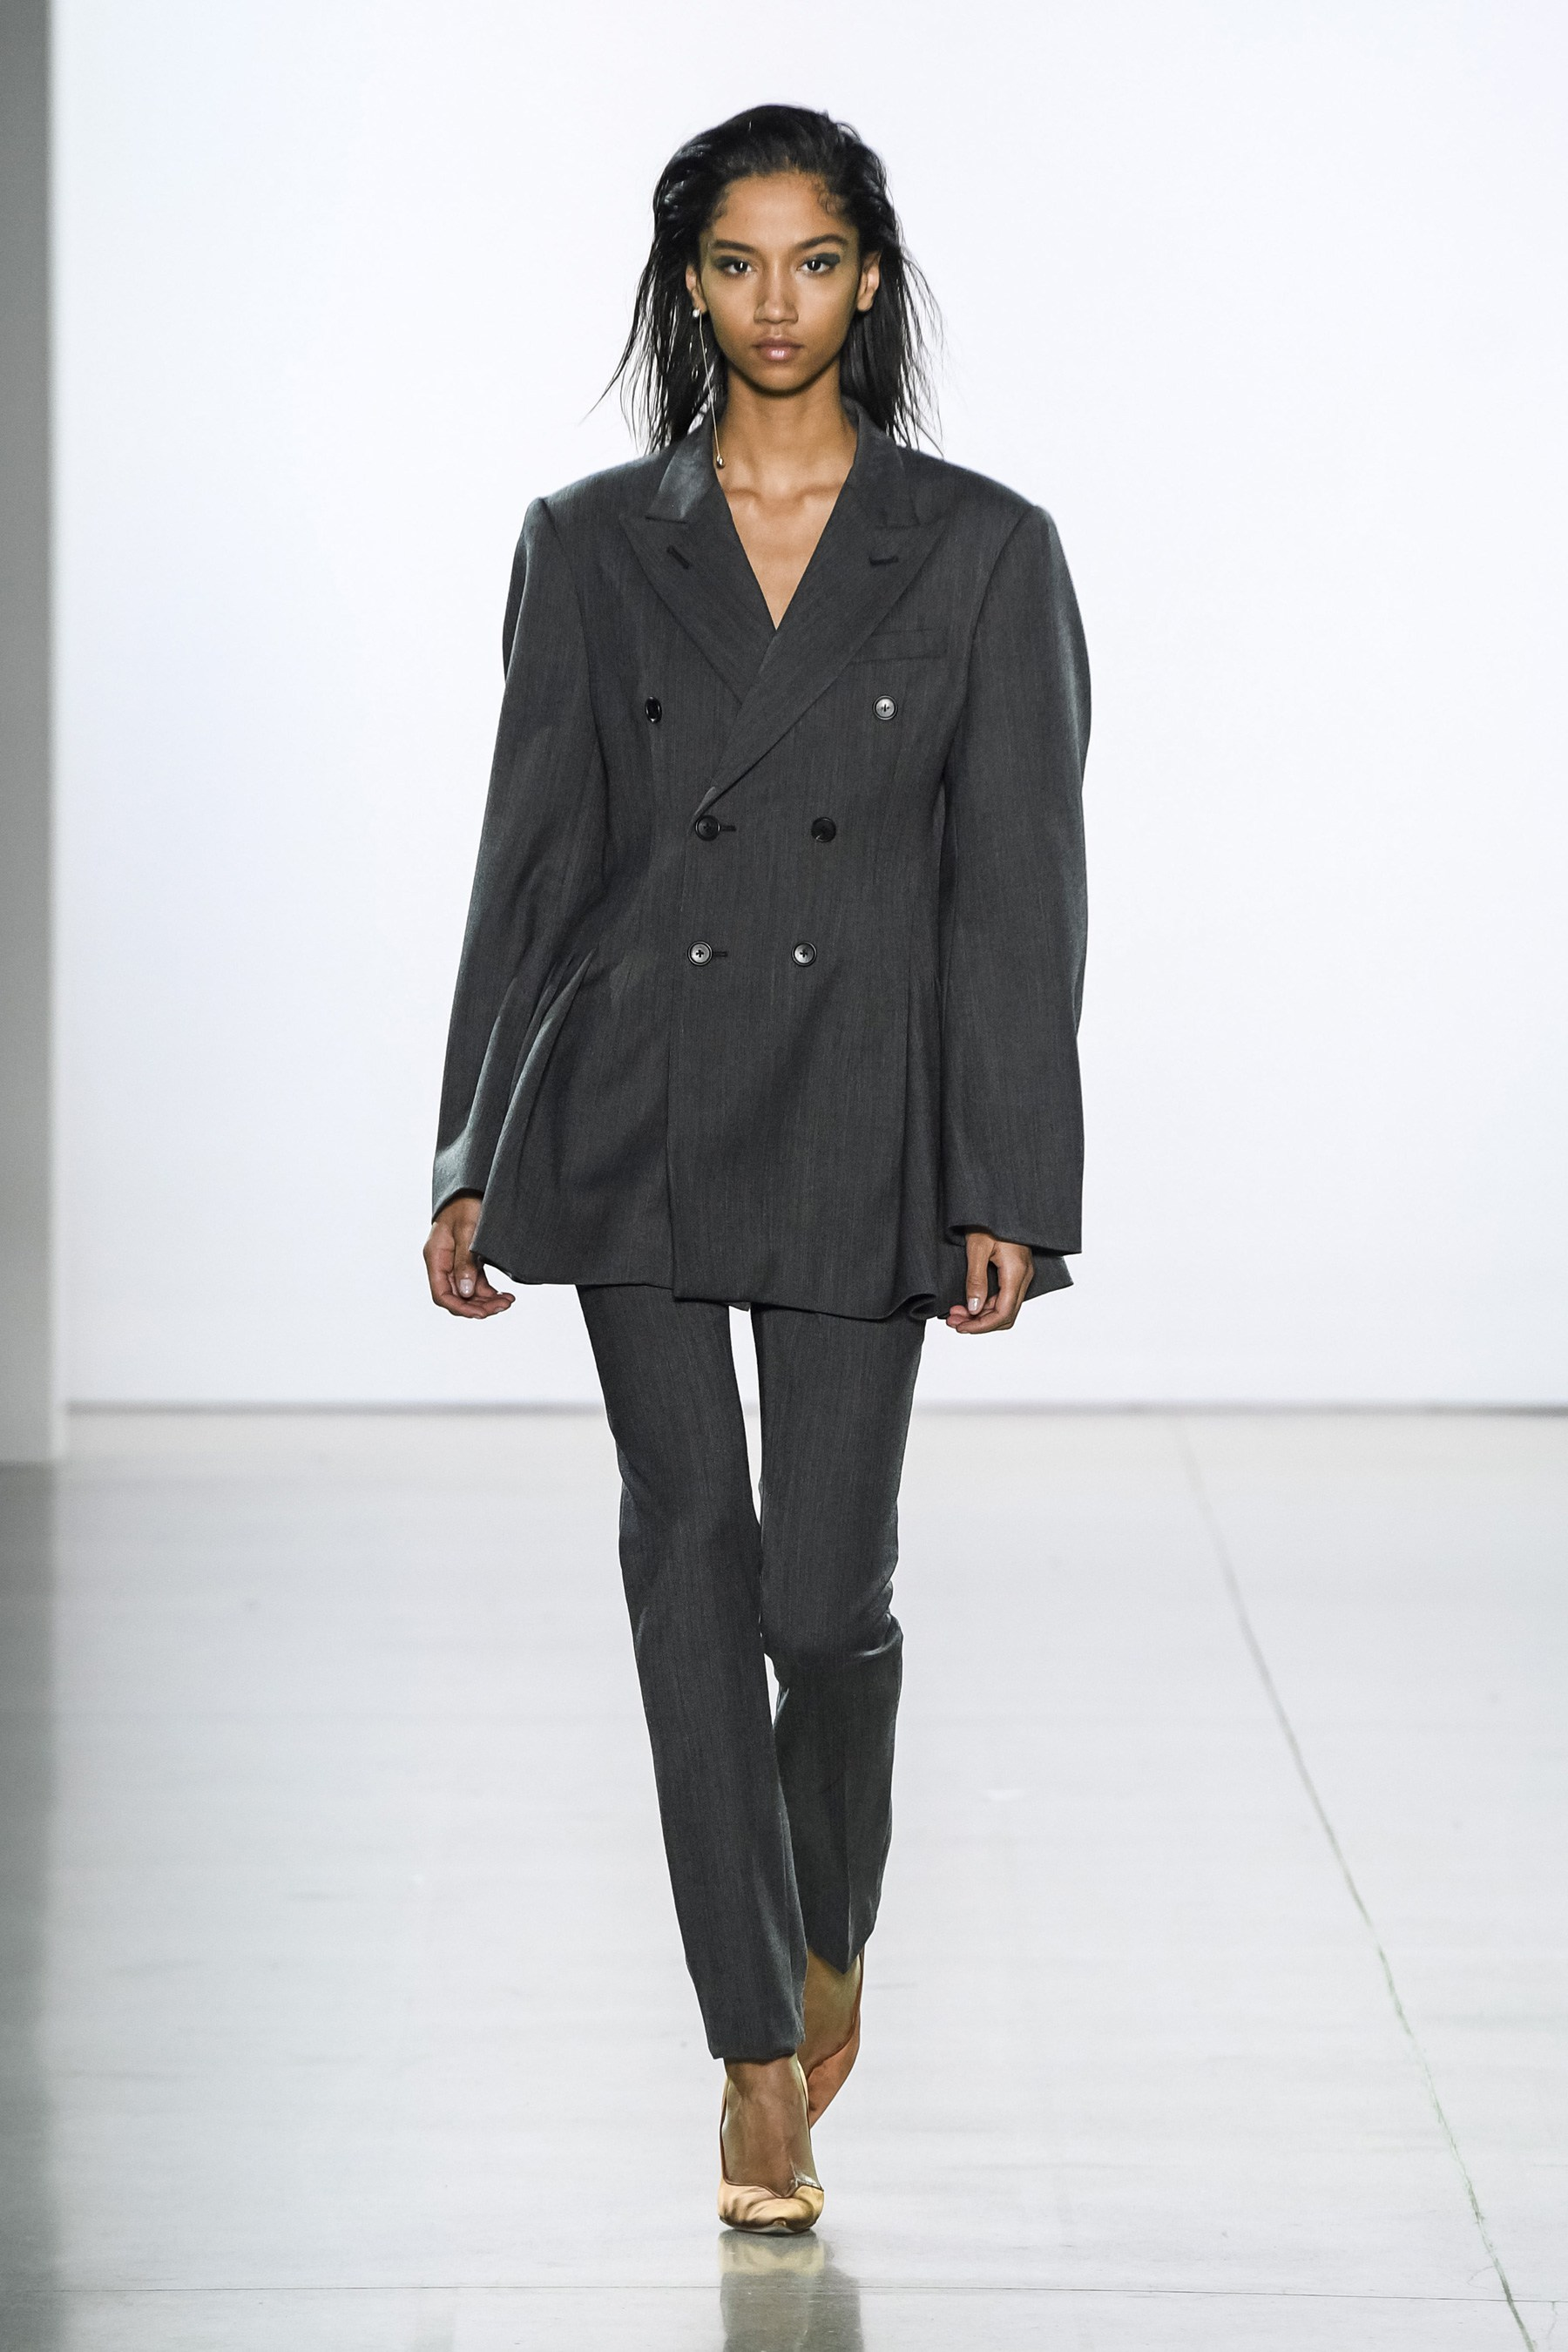 Suit Up - Fashion Trend Fall 2018 New York